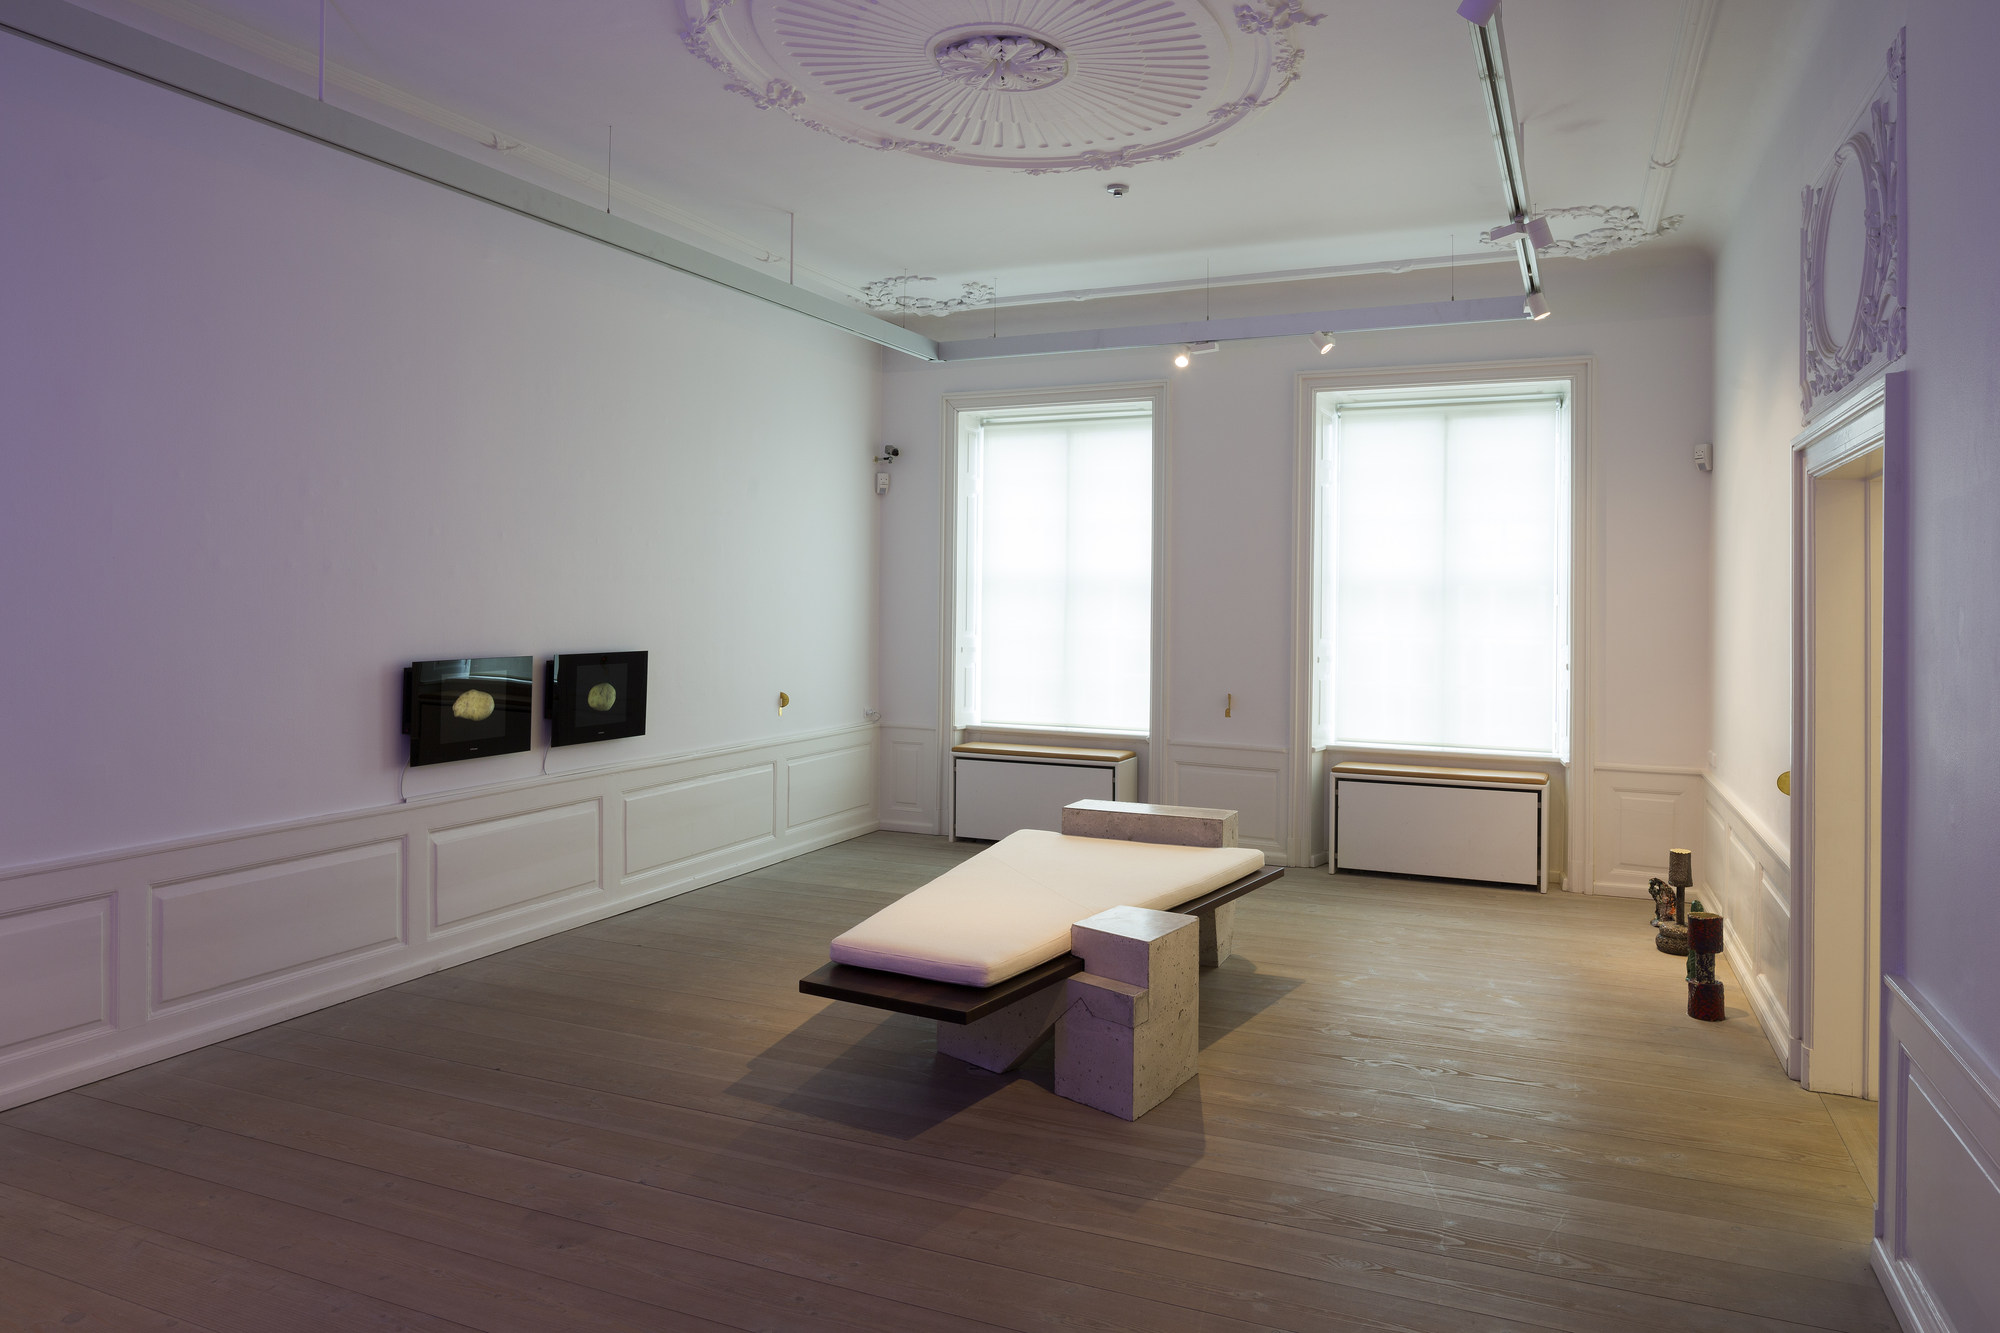 The Salon.installationview. credit Torben Eskerod2